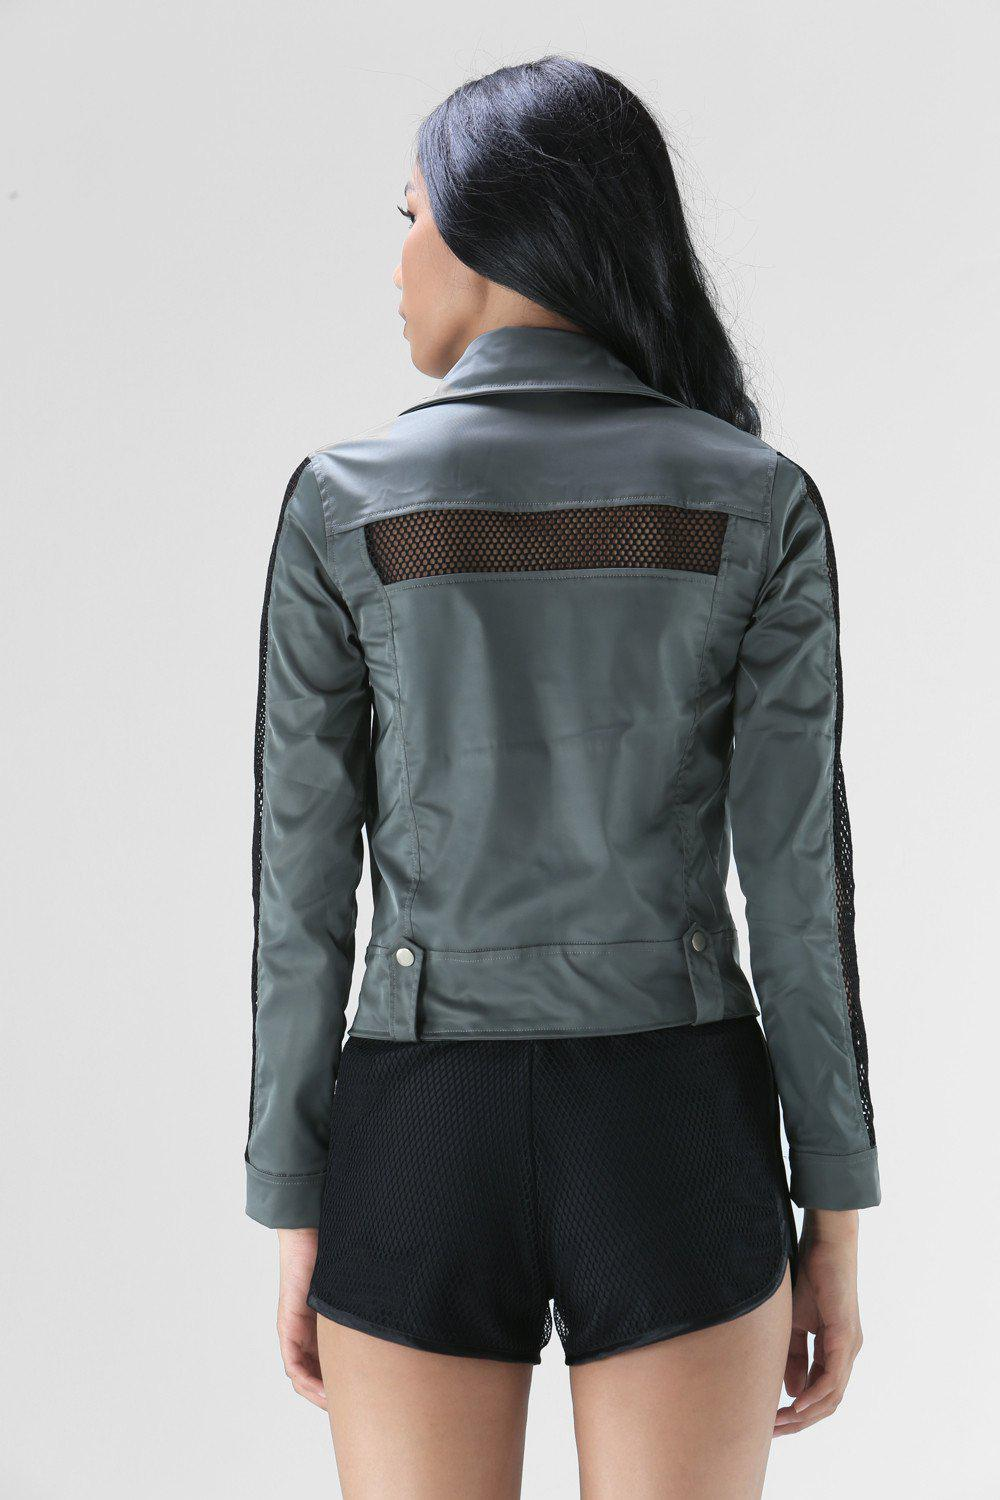 The Tracer Jacket